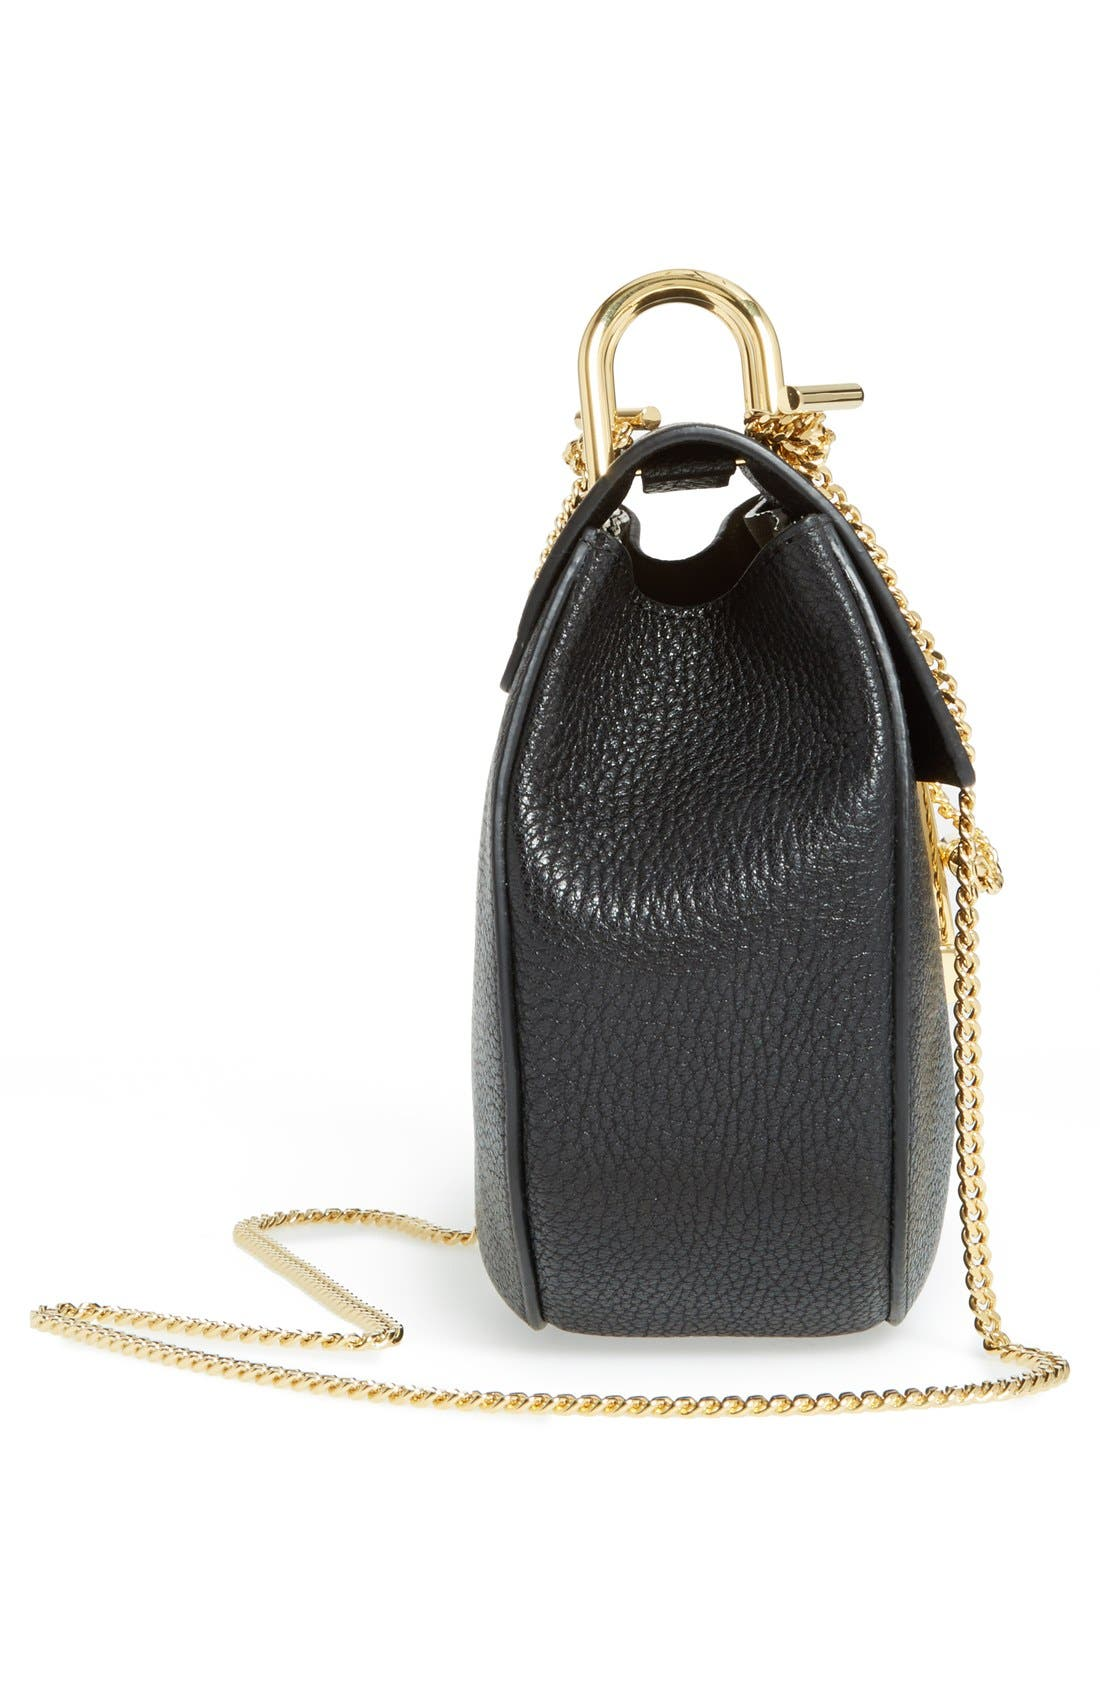 CHLOÉ, Drew Leather Shoulder Bag, Alternate thumbnail 4, color, BLACK GOLD HRDWRE